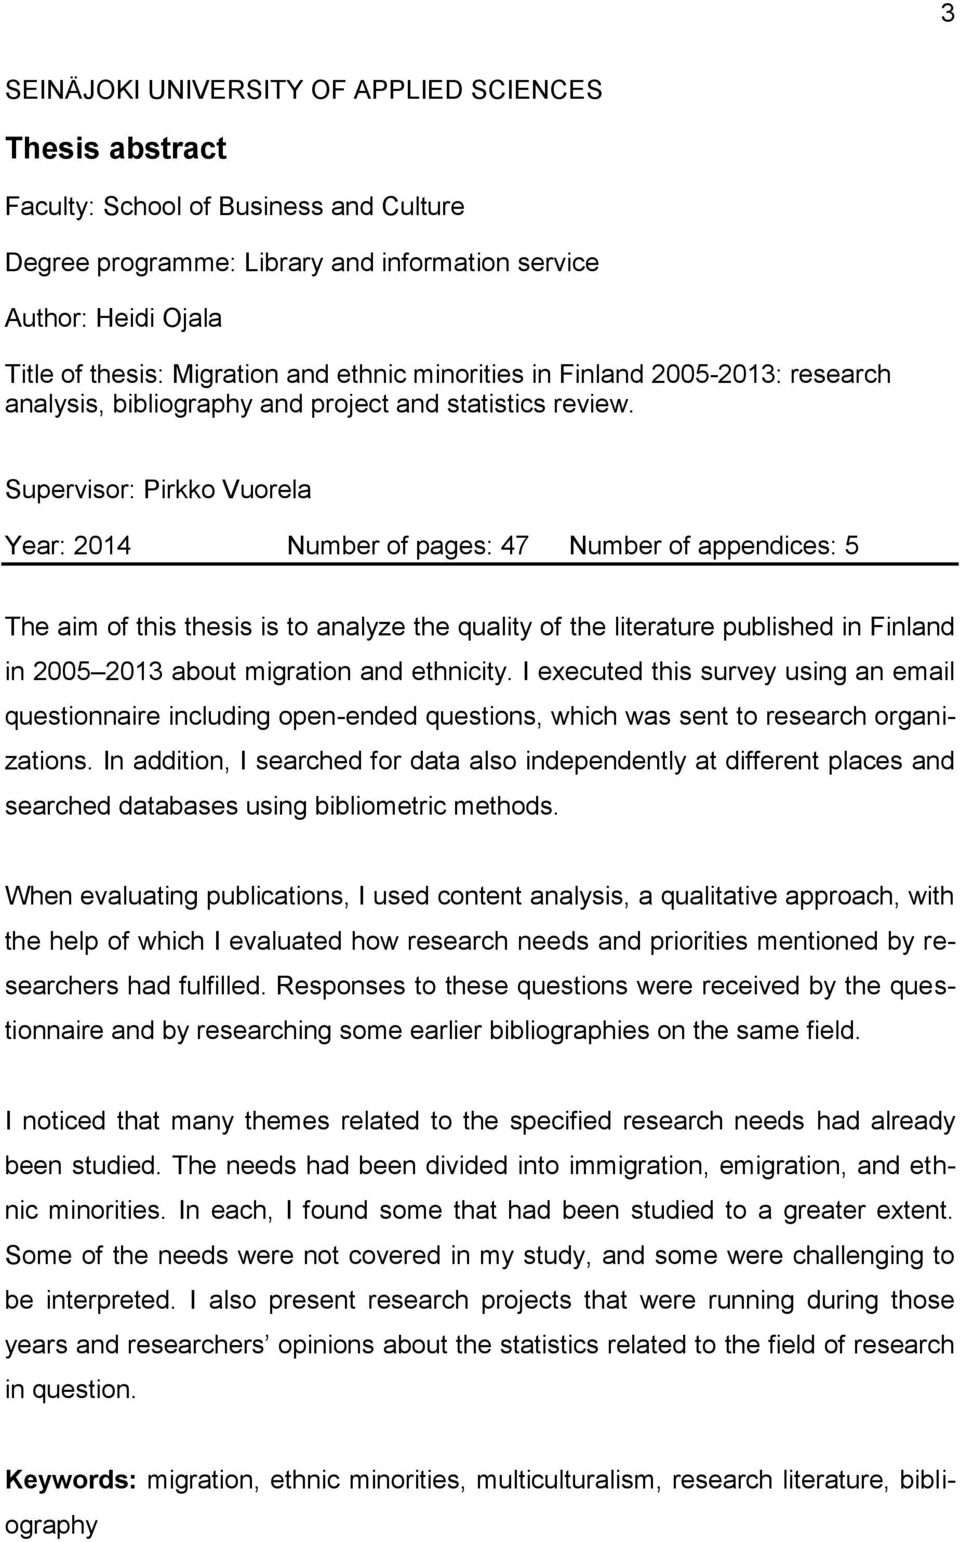 Supervisor: Pirkko Vuorela Year: 2014 Number of pages: 47 Number of appendices: 5 The aim of this thesis is to analyze the quality of the literature published in Finland in 2005 2013 about migration